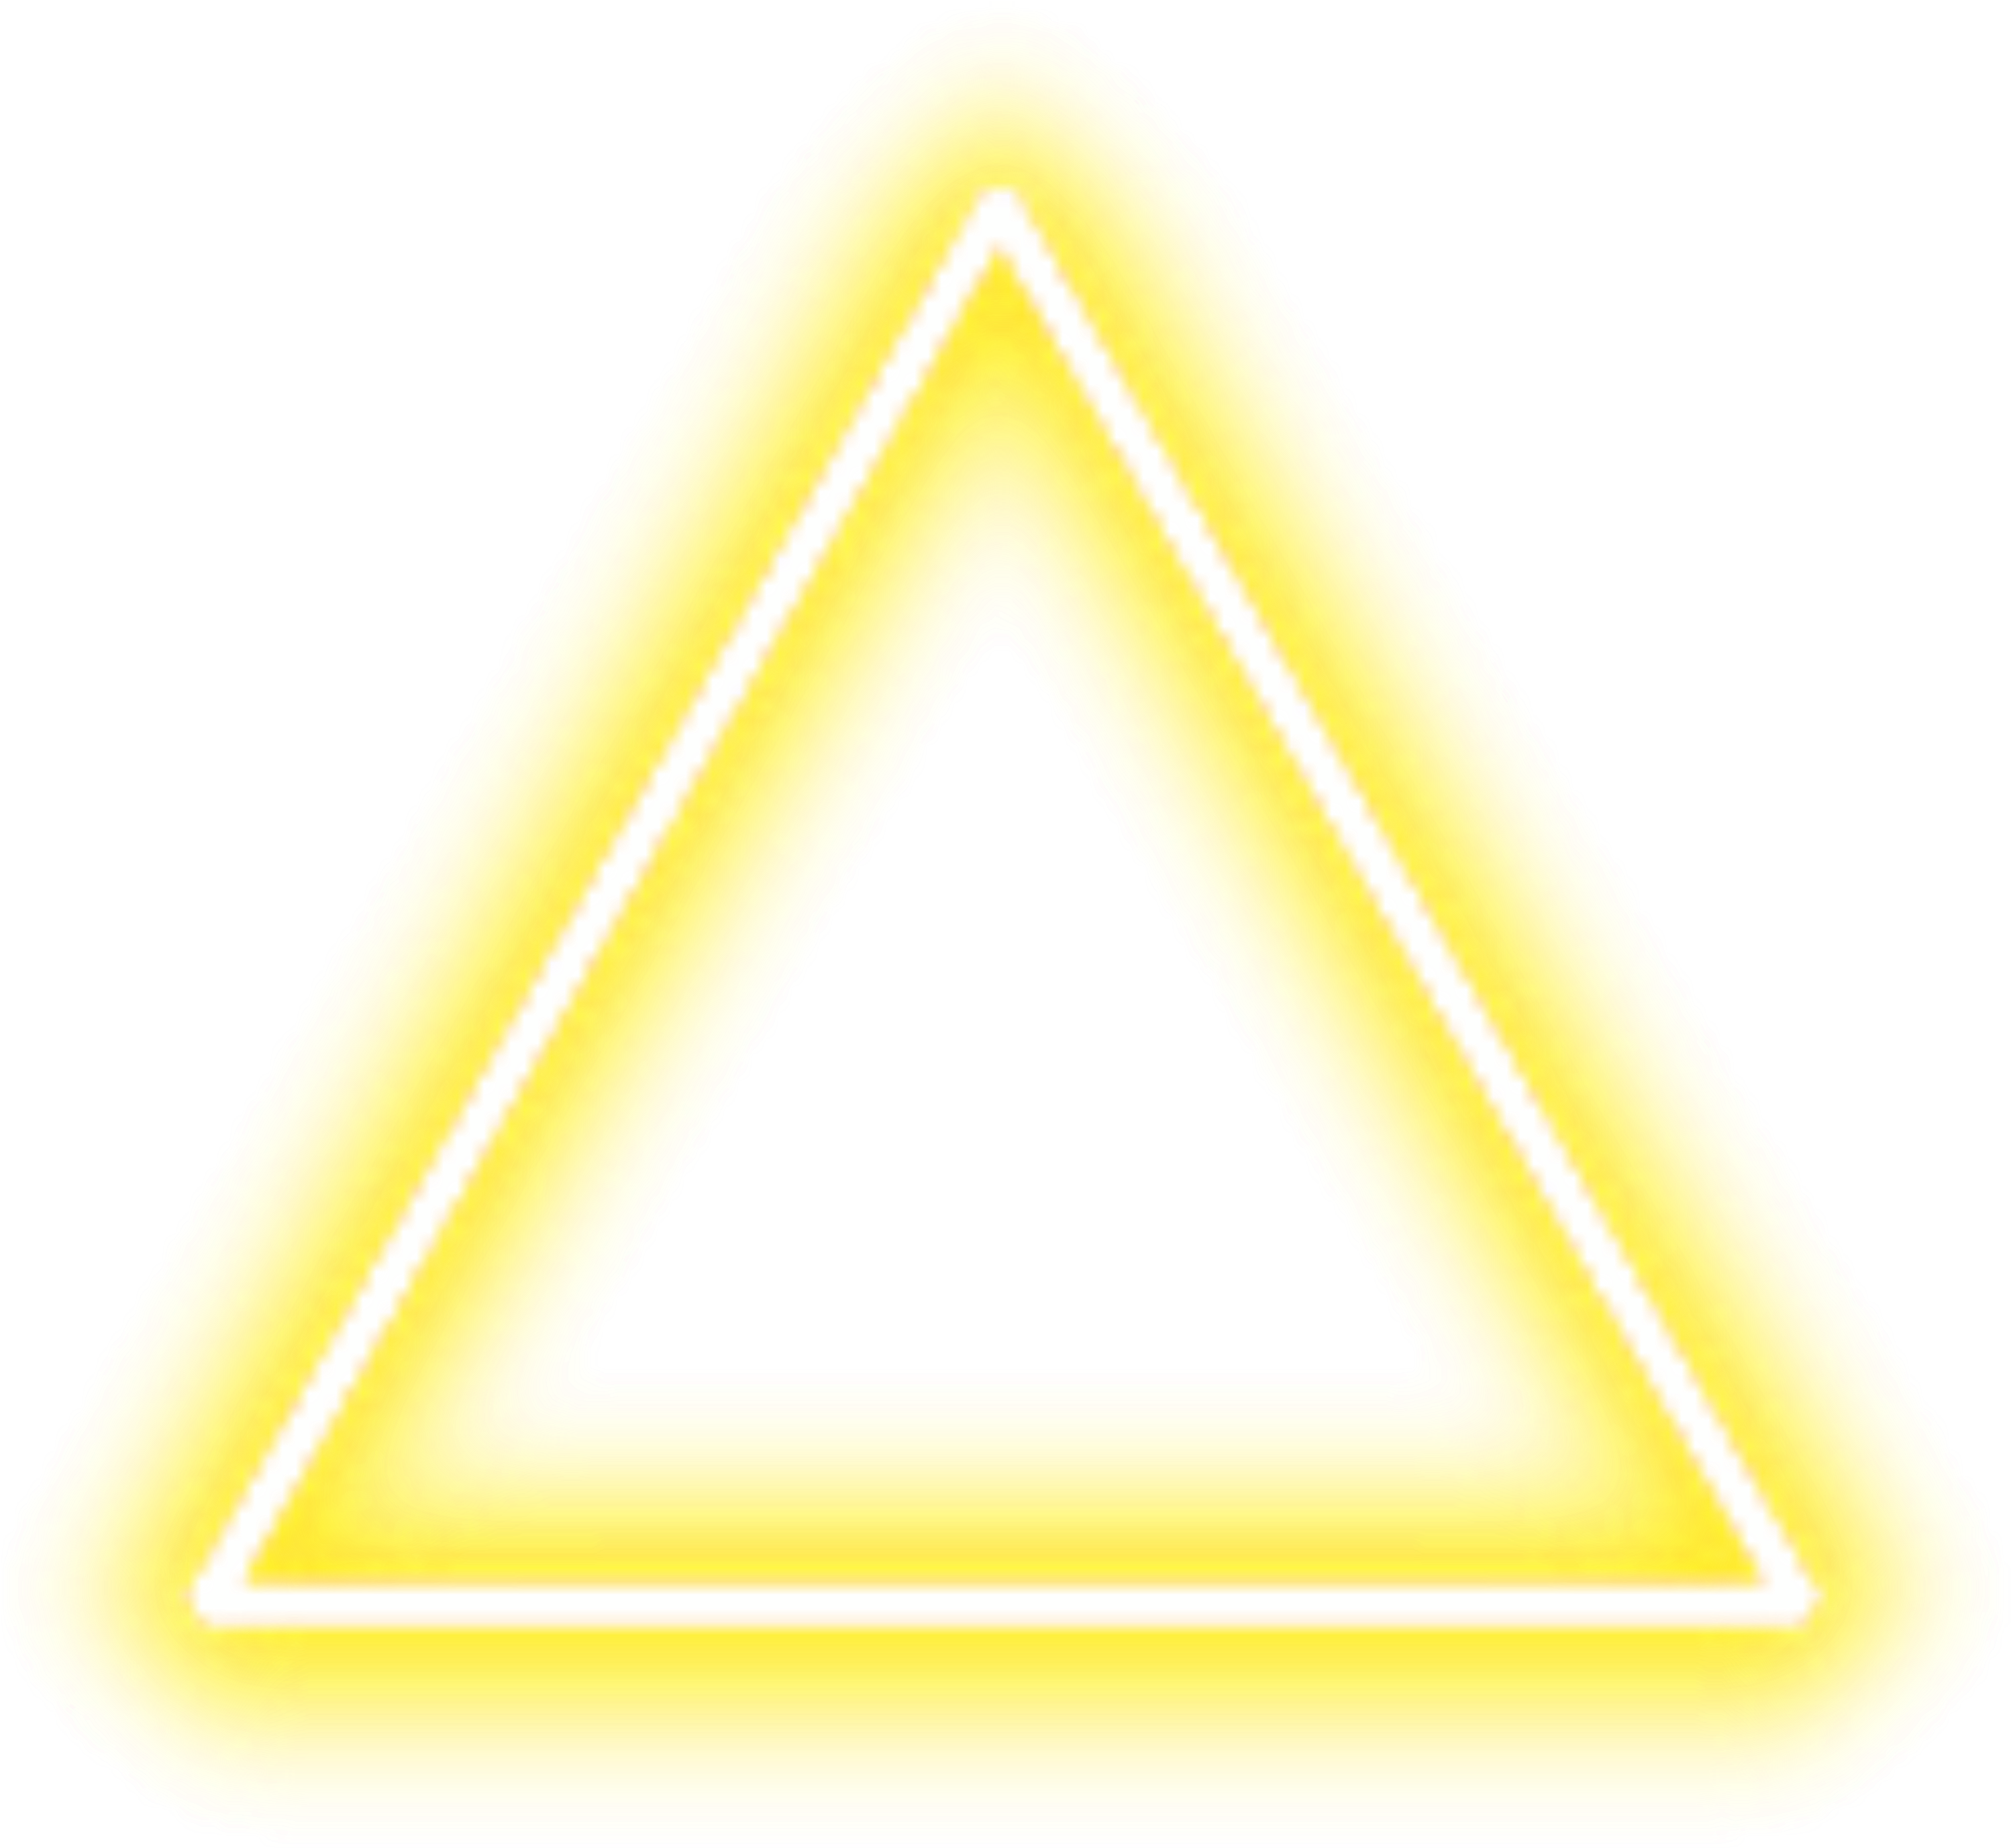 Neon Triangle Border Png Yellow Freetoedit Ps4 Triangle Square Circle X Png Download Transparent Png Image Picsart Png Photo Editing Tricks Neon Png